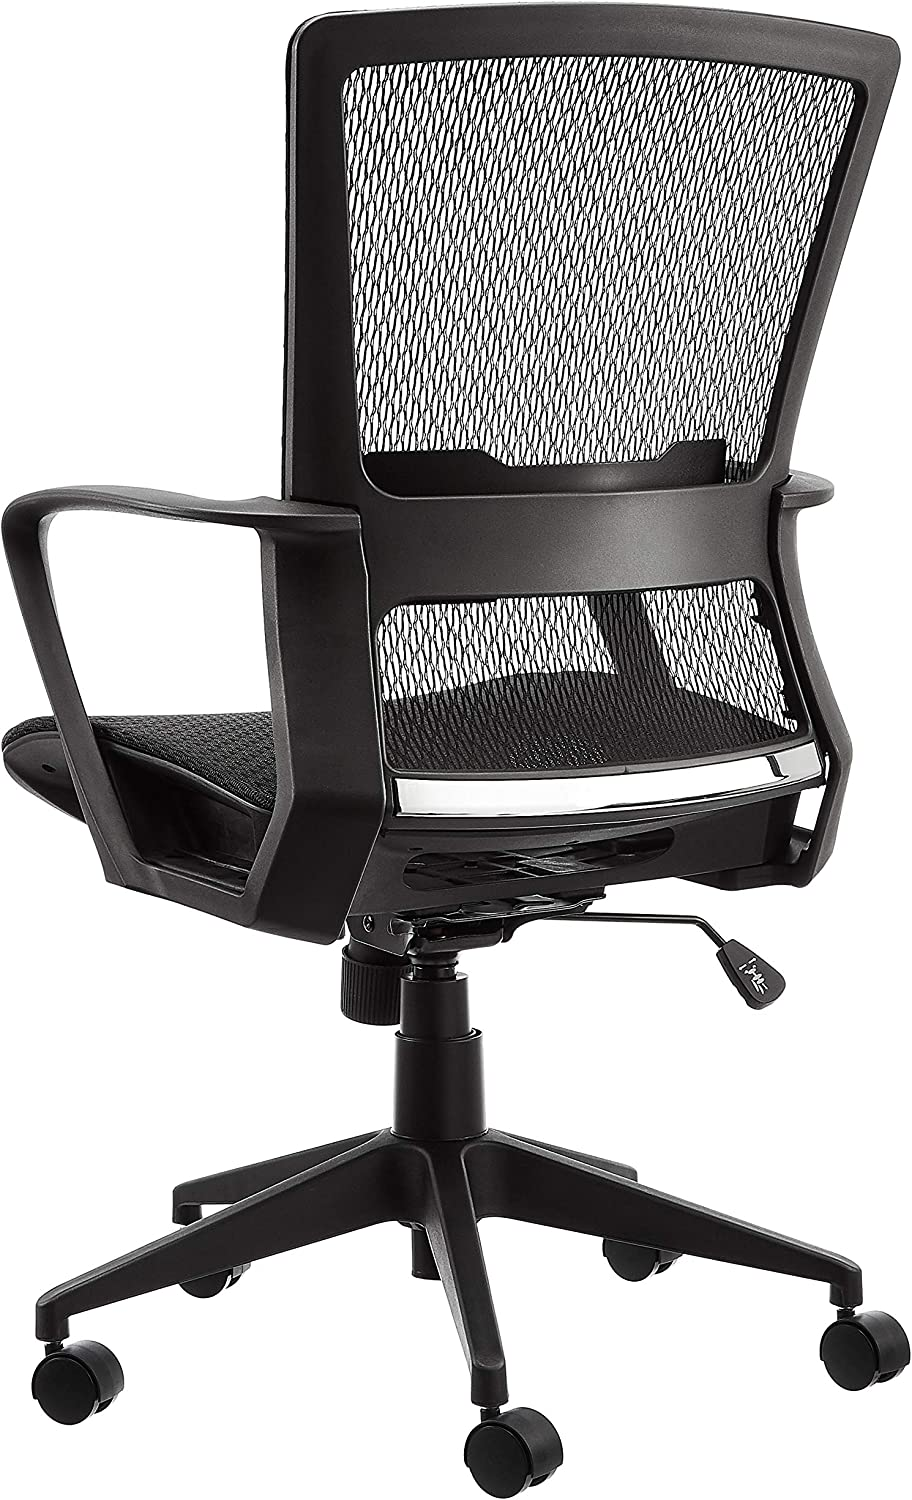 Grey Basics Mid-Back Mesh Chair with Contoured Mesh Seat for Extra Breathability